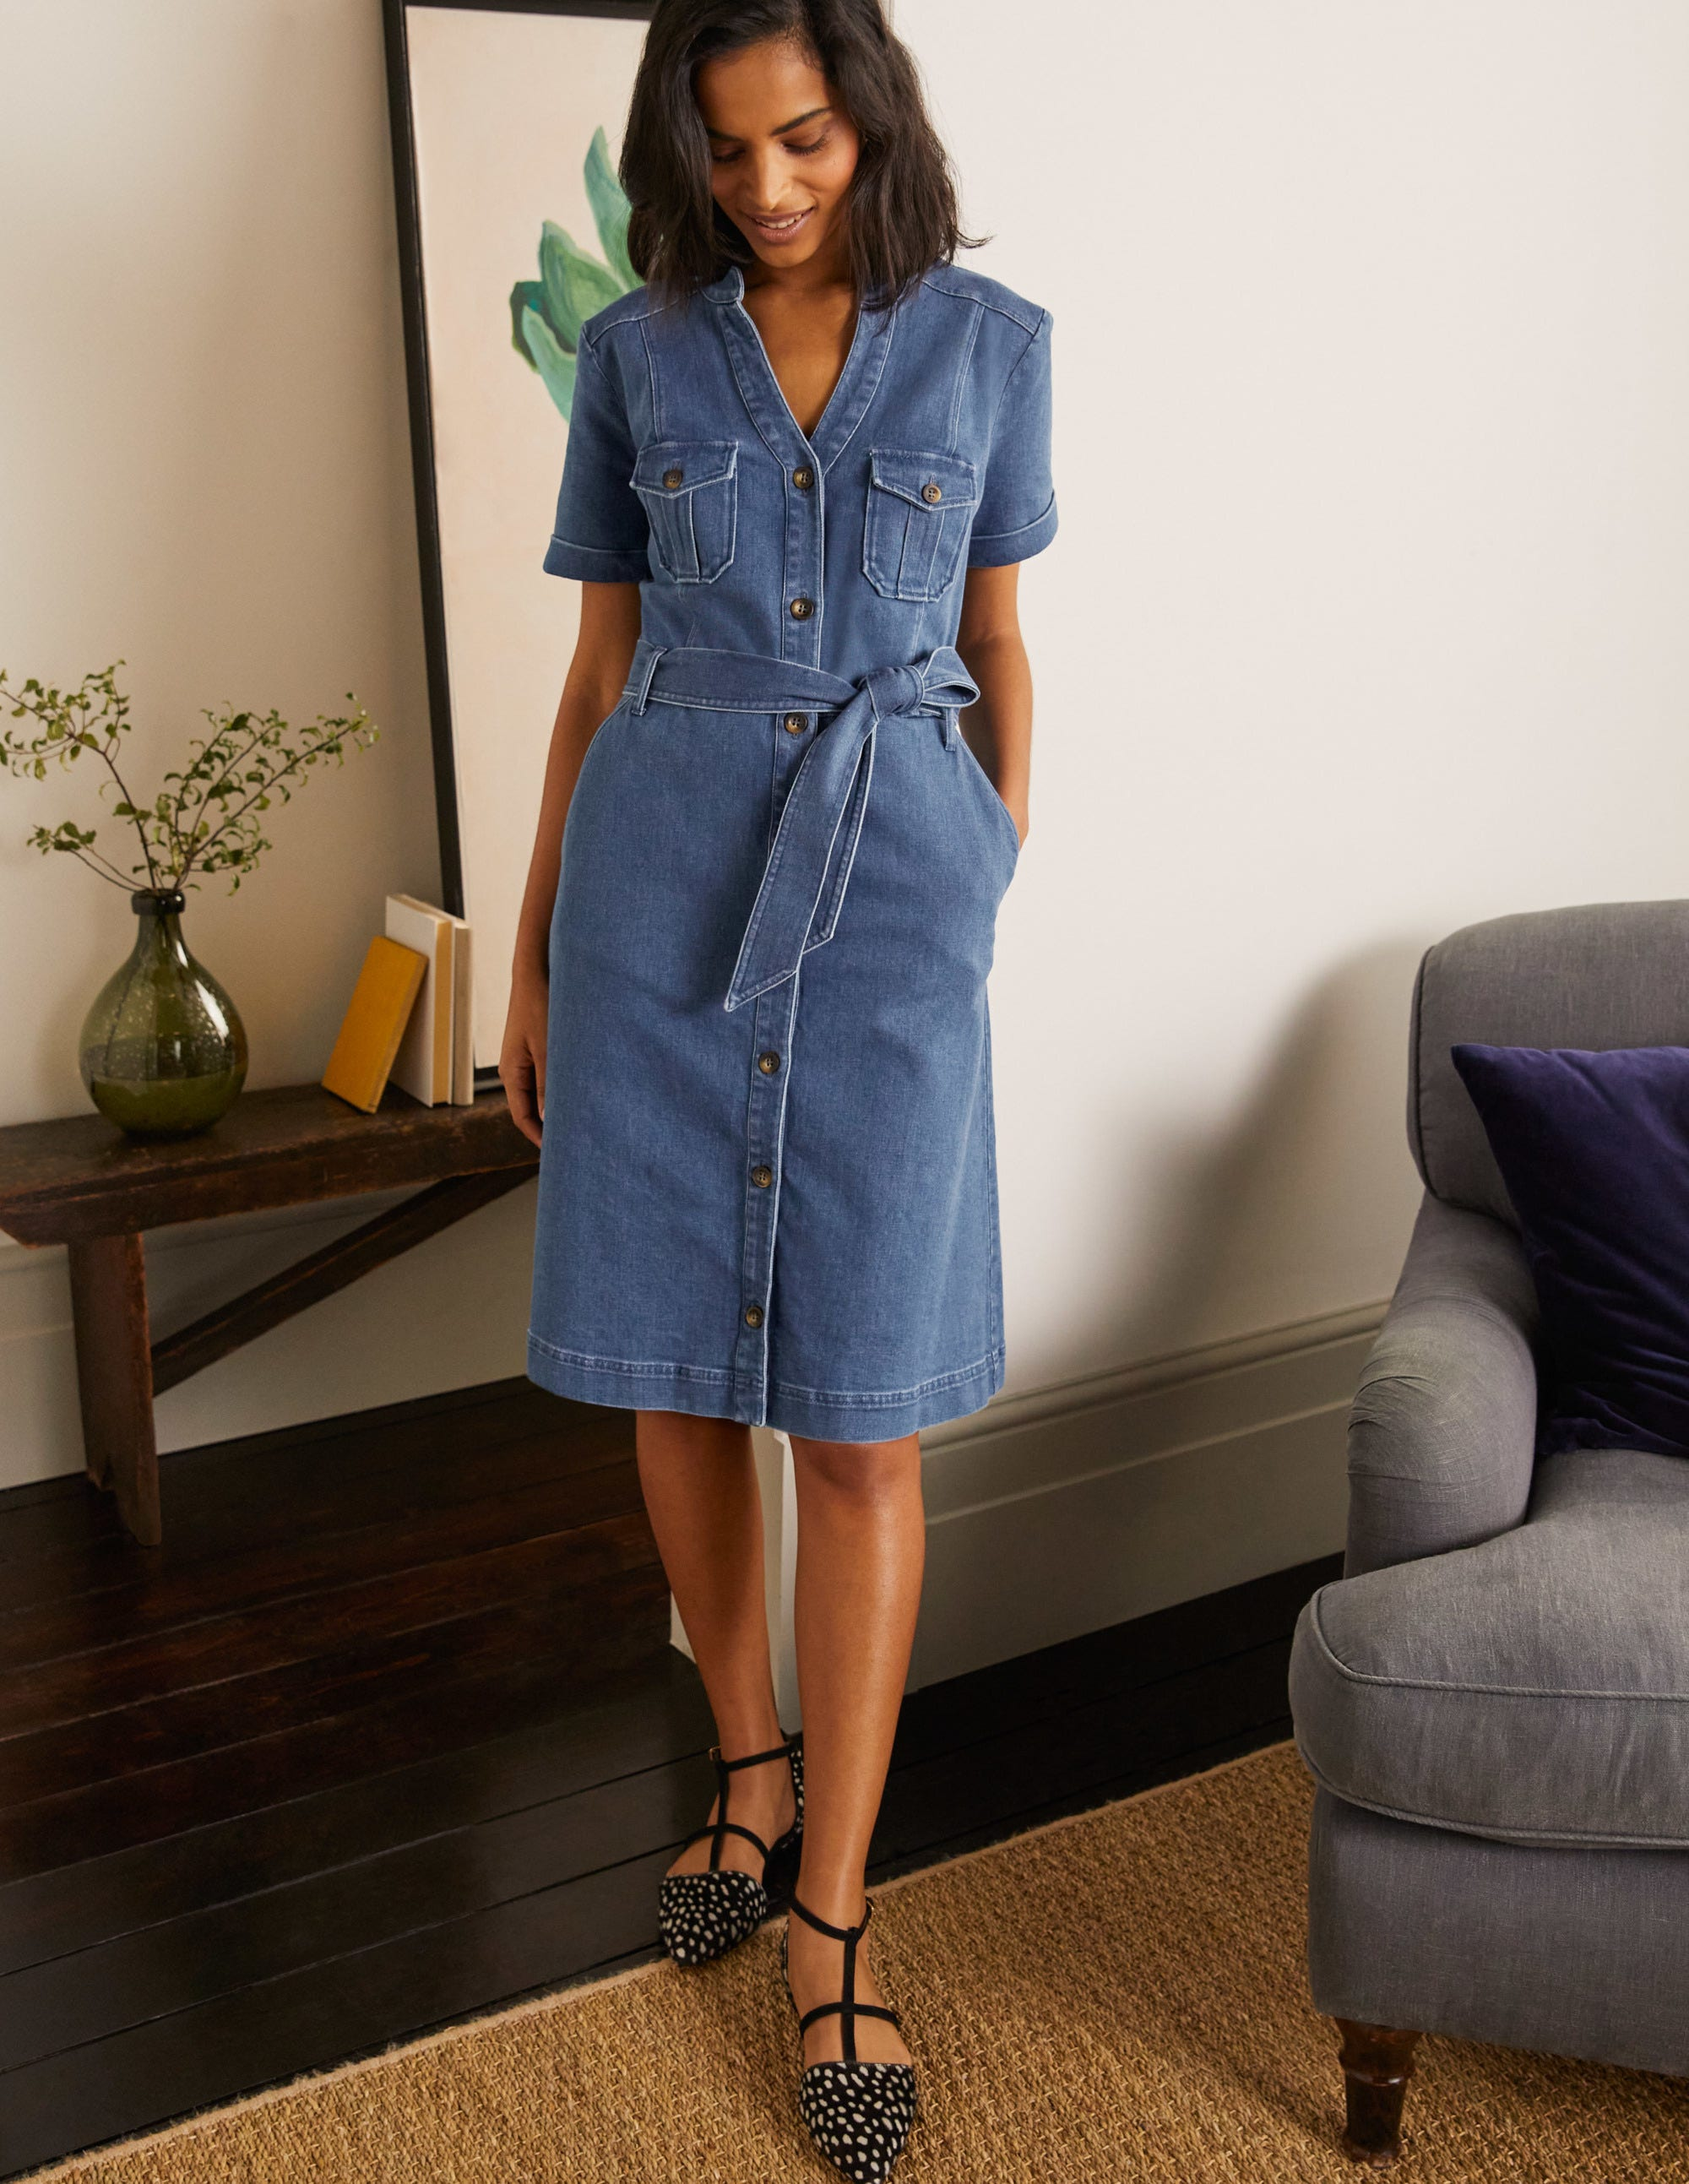 Boden Cecily Shirt Dress - Mid Vintage Denim